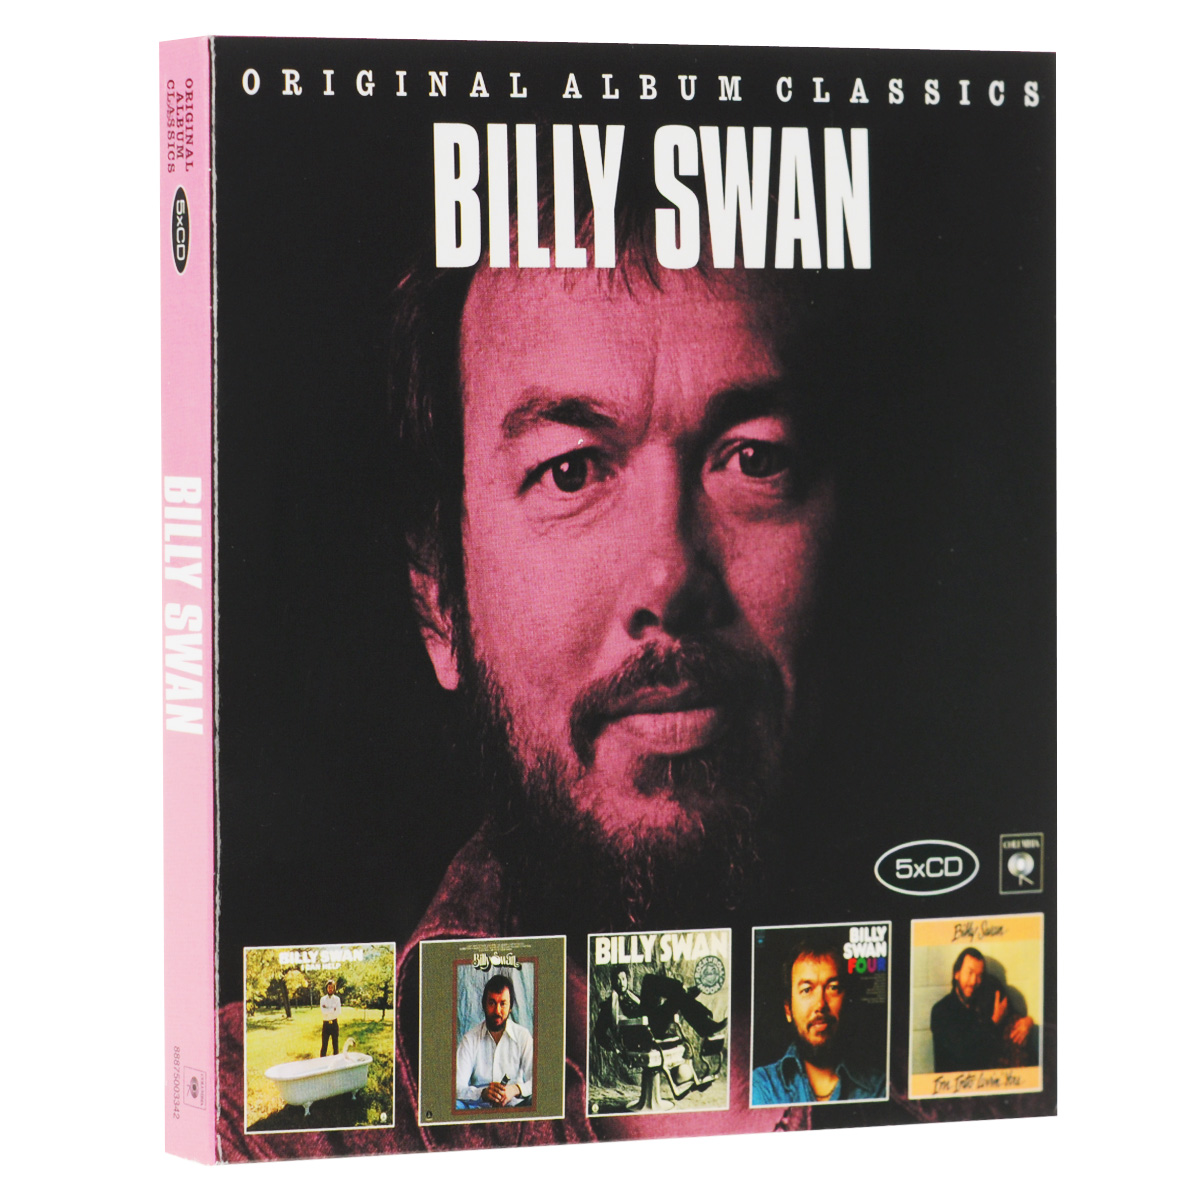 Билли Суон Billy Swan. Original Album Classics (5 CD) quiet riot quiet riot original album classics 5 cd